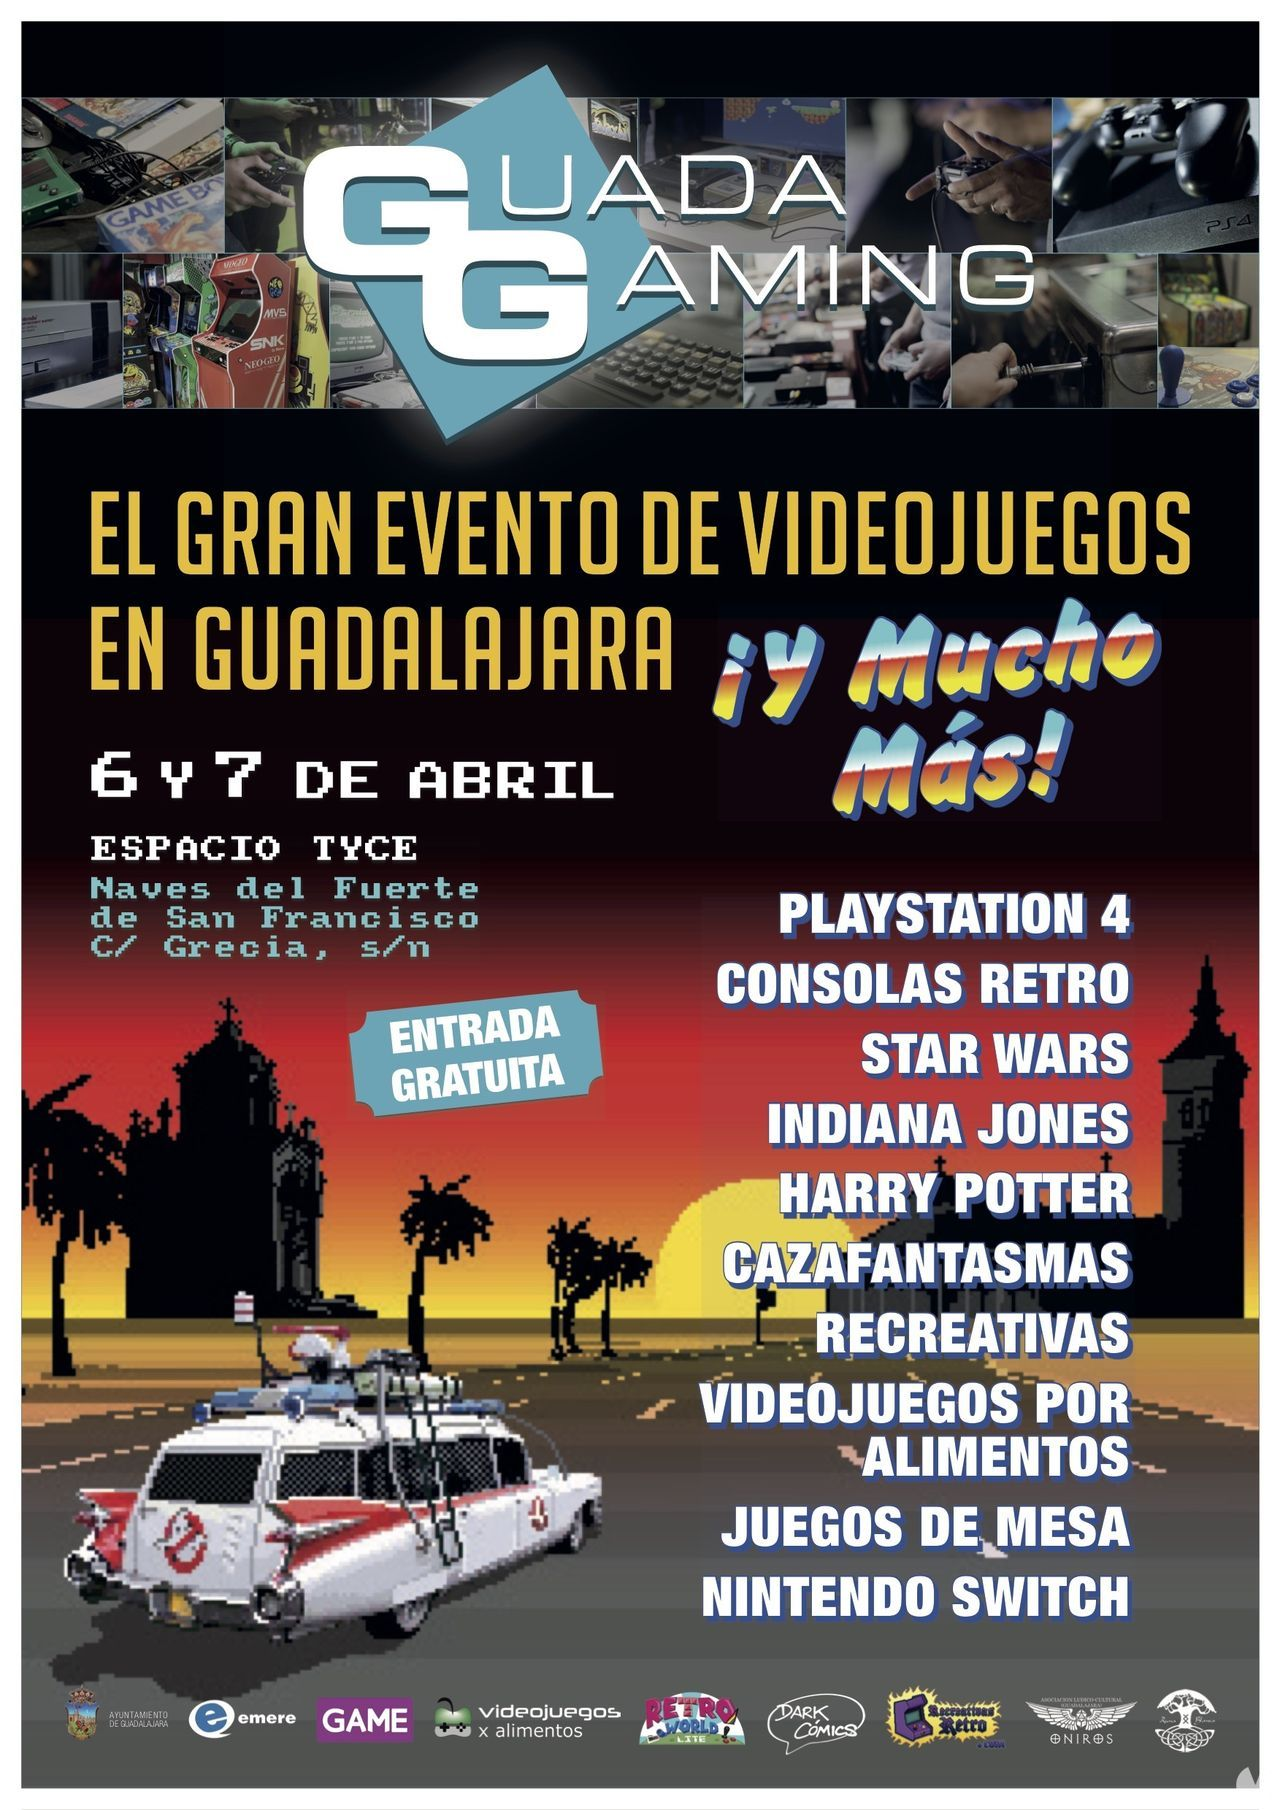 Guada Gaming will be held in Guadalajara on 6 and 7 April